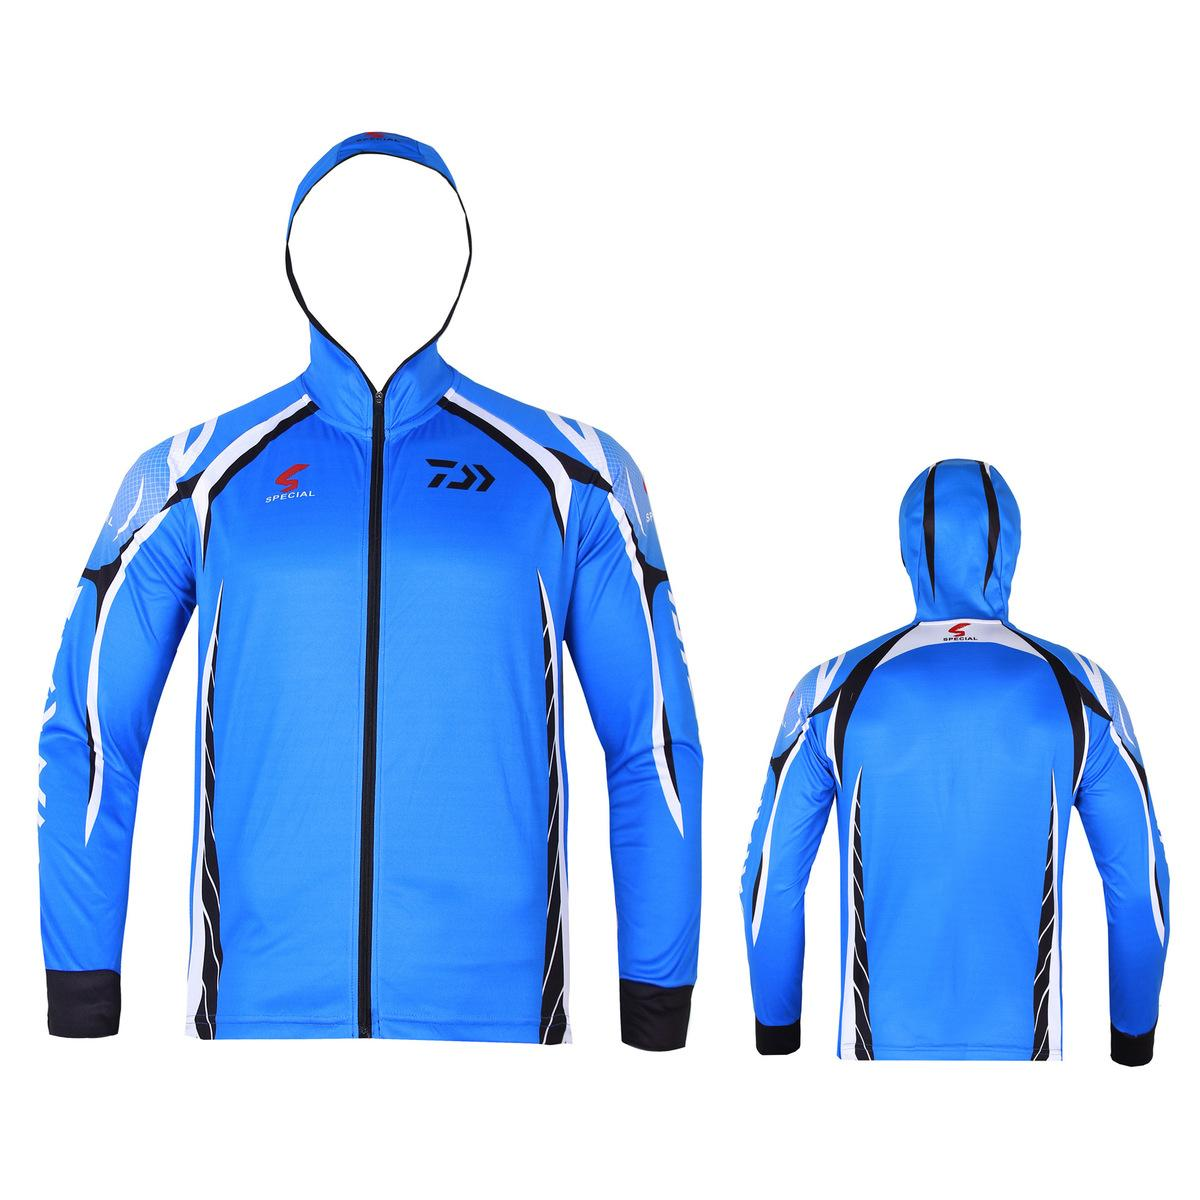 dc5cde60d288 New Fishing Clothes 2018 New Fishing Shirt Zipper Breathable Quick Dry  Anti-uv Long Sleeve Fishing Clothing Hiking Shirts C18111401 Online with   25.79 Piece ...